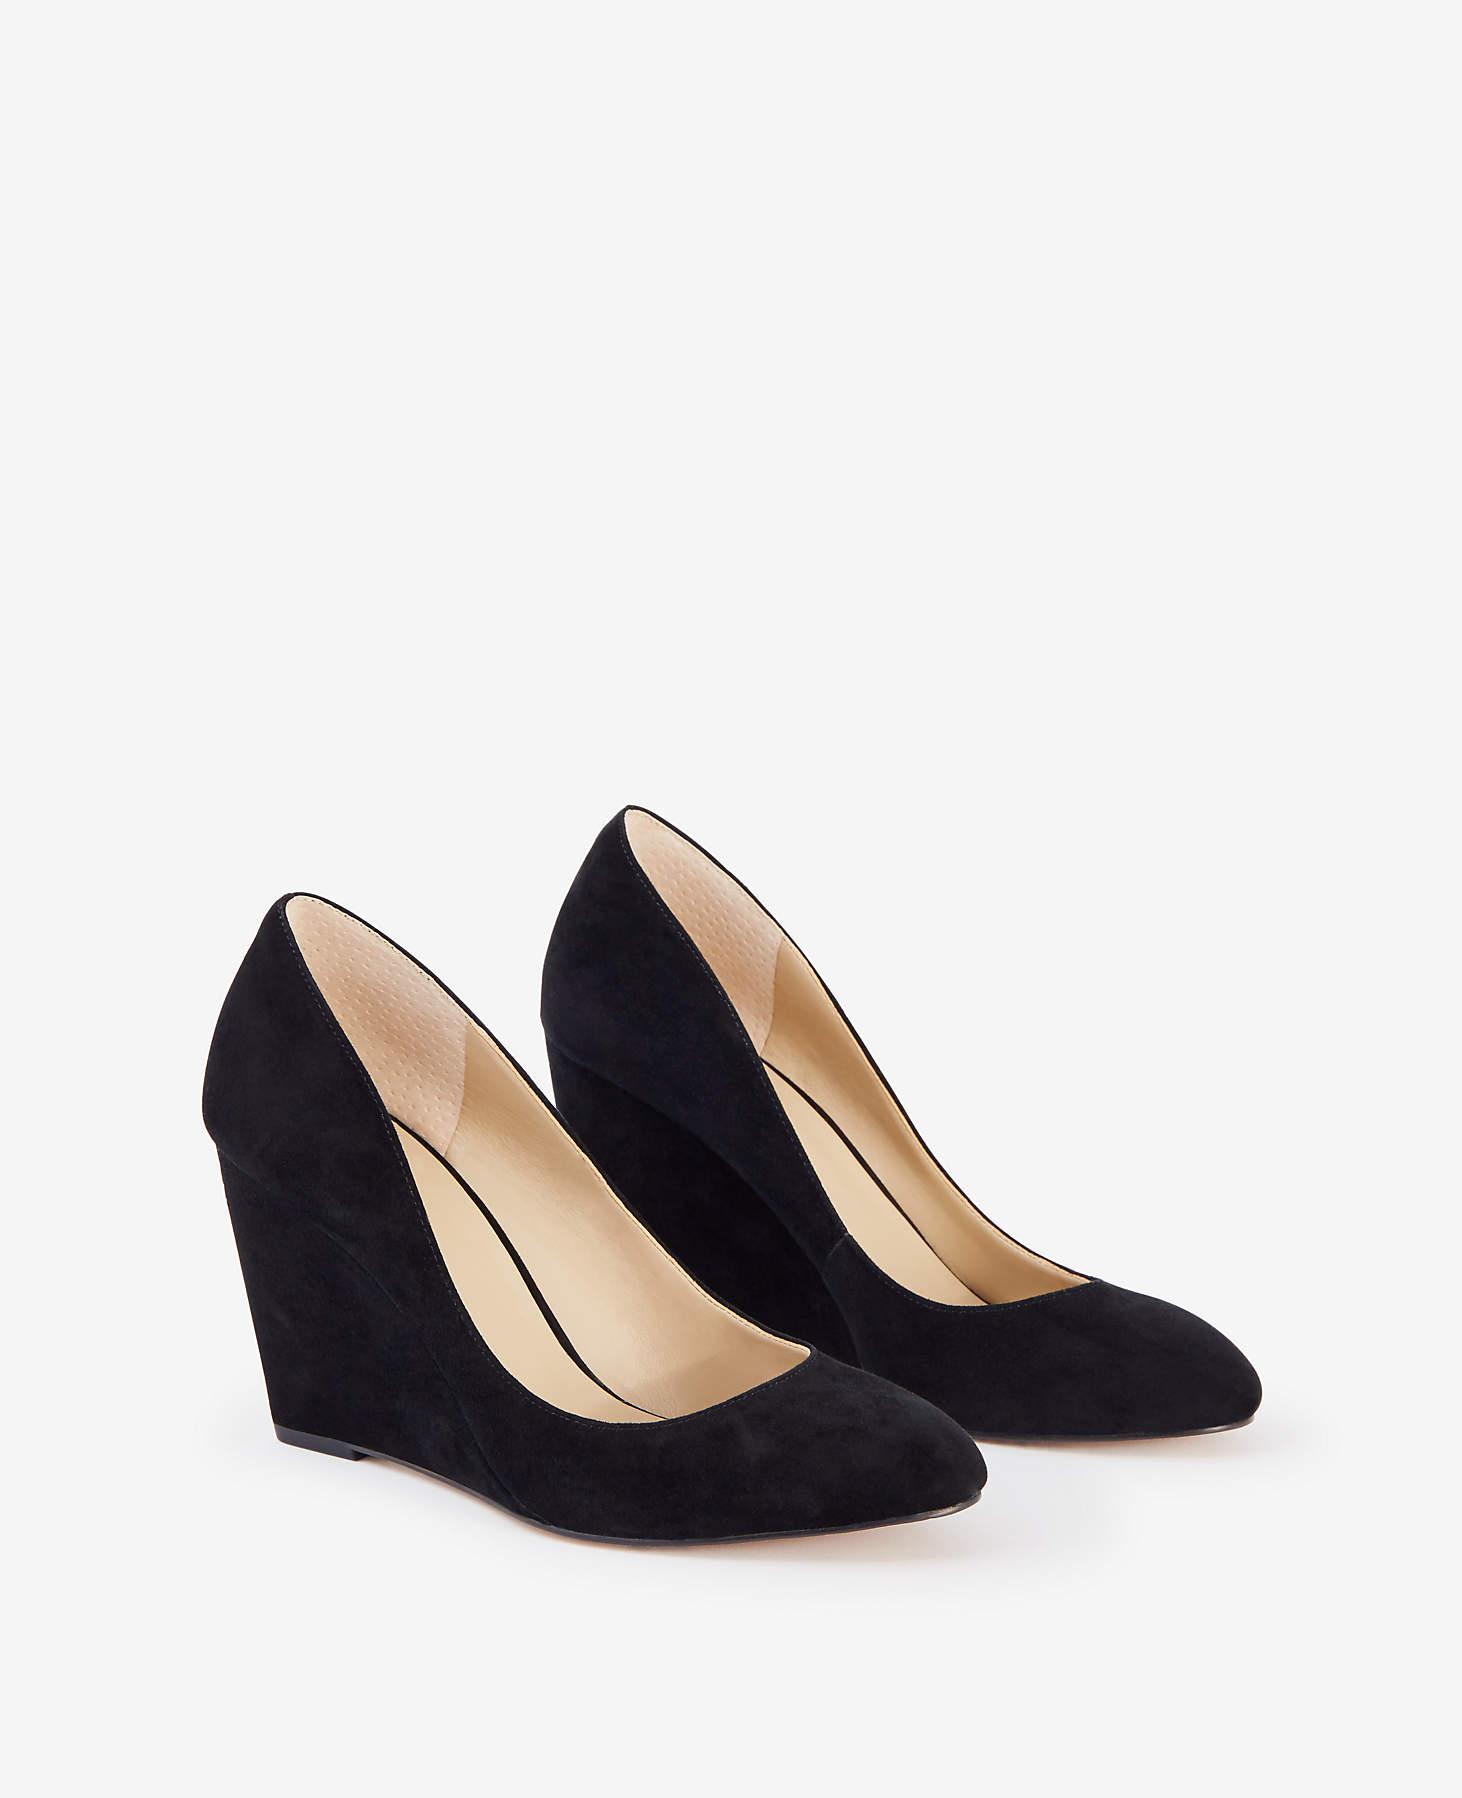 887162e2295 Lyst - Ann Taylor Molly Suede Wedge Pumps in Black